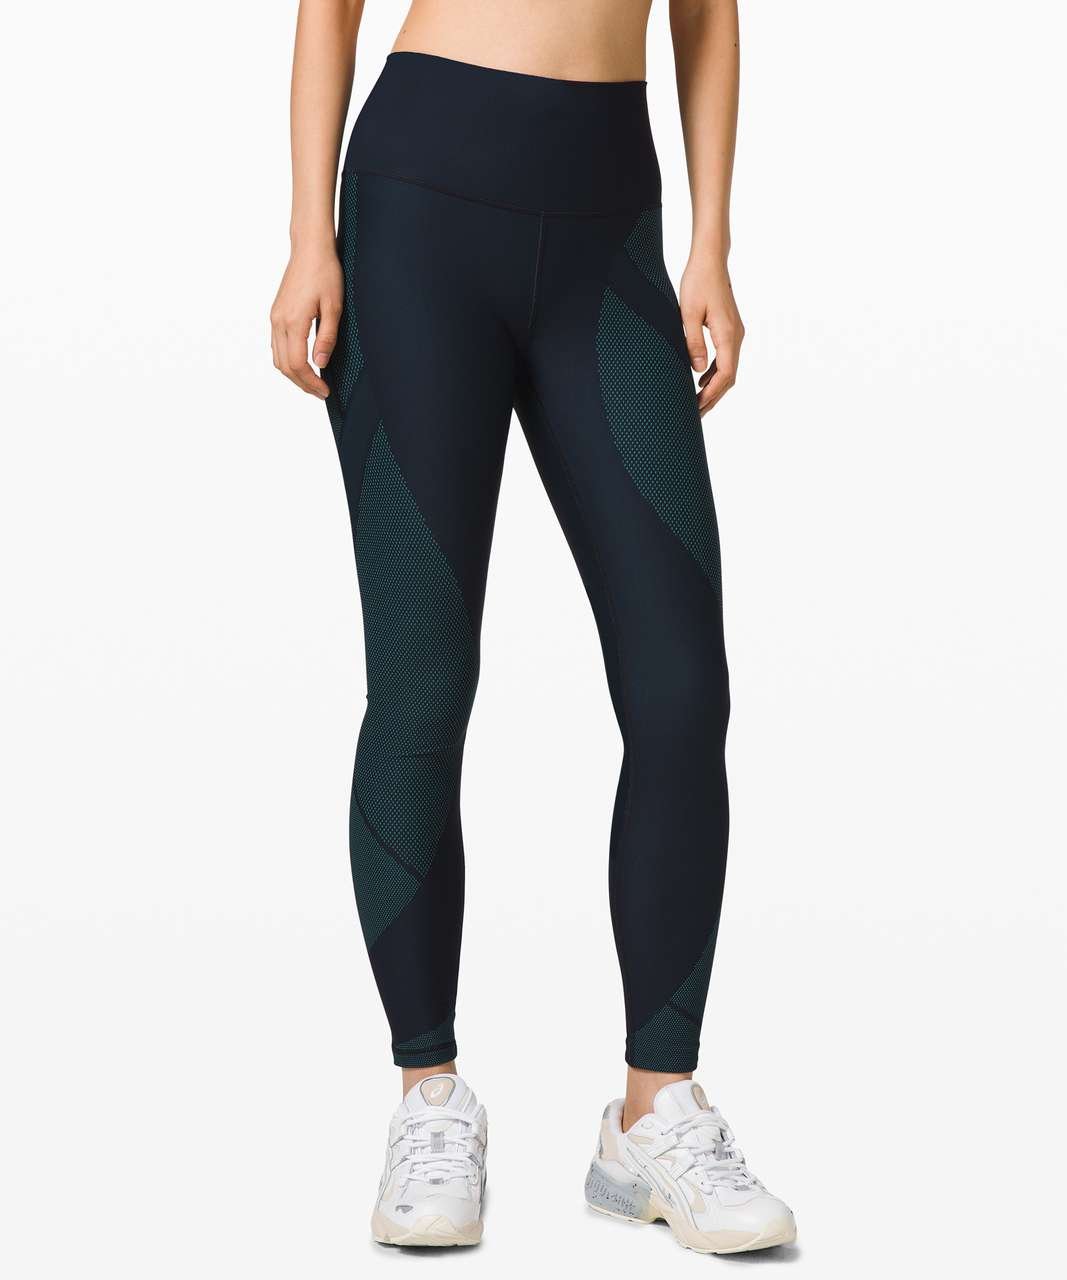 Lululemon My Element Tight *lululemon x Roksanda - True Navy / Arctic Teal